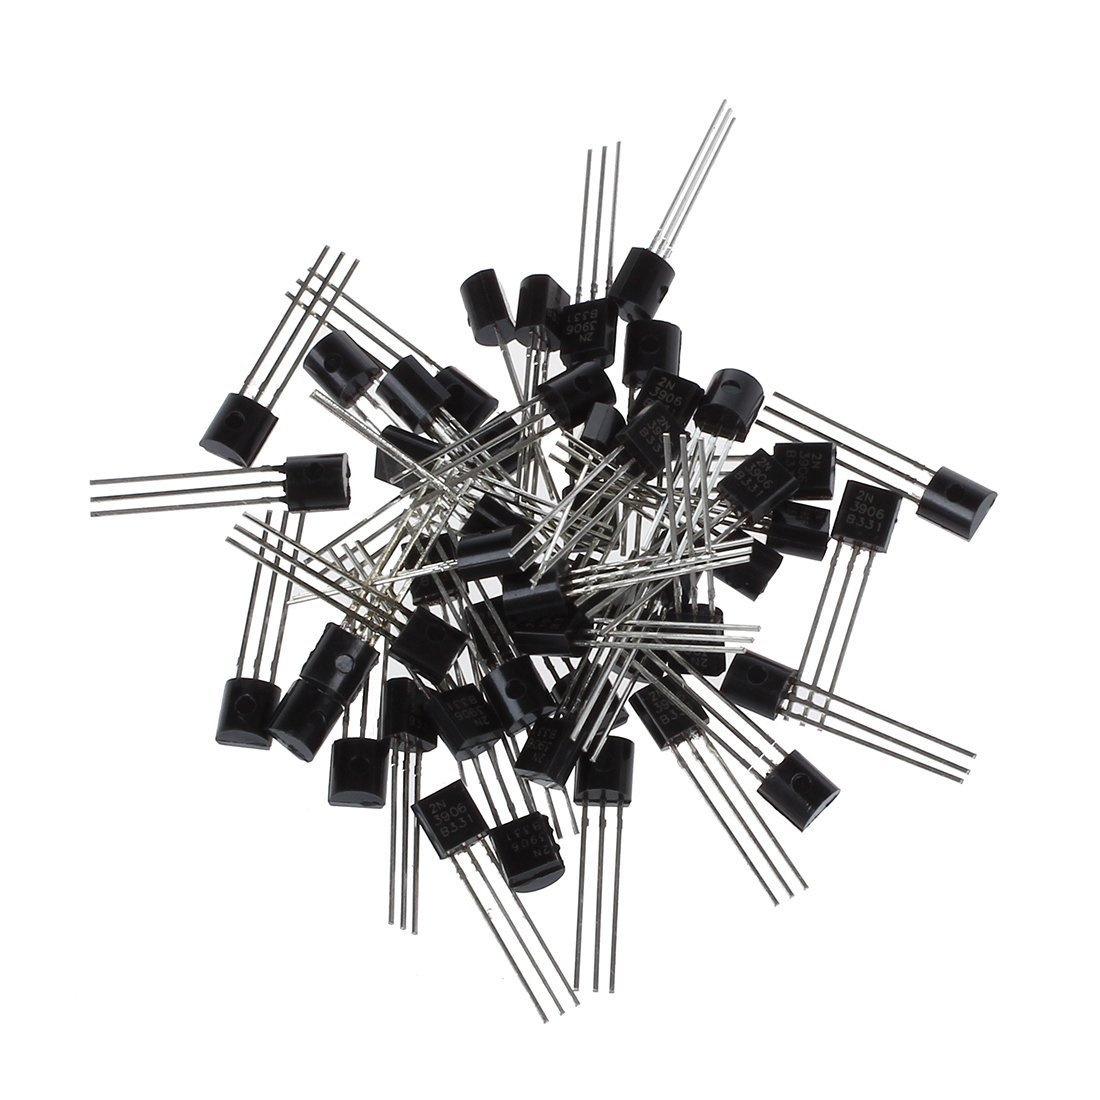 Toogoor 2n3906 3 Pins General Purpose Pnp Bipolar Kinds Of Transistors Are I Npn Transistor Ii 50 Pcs Home Improvement